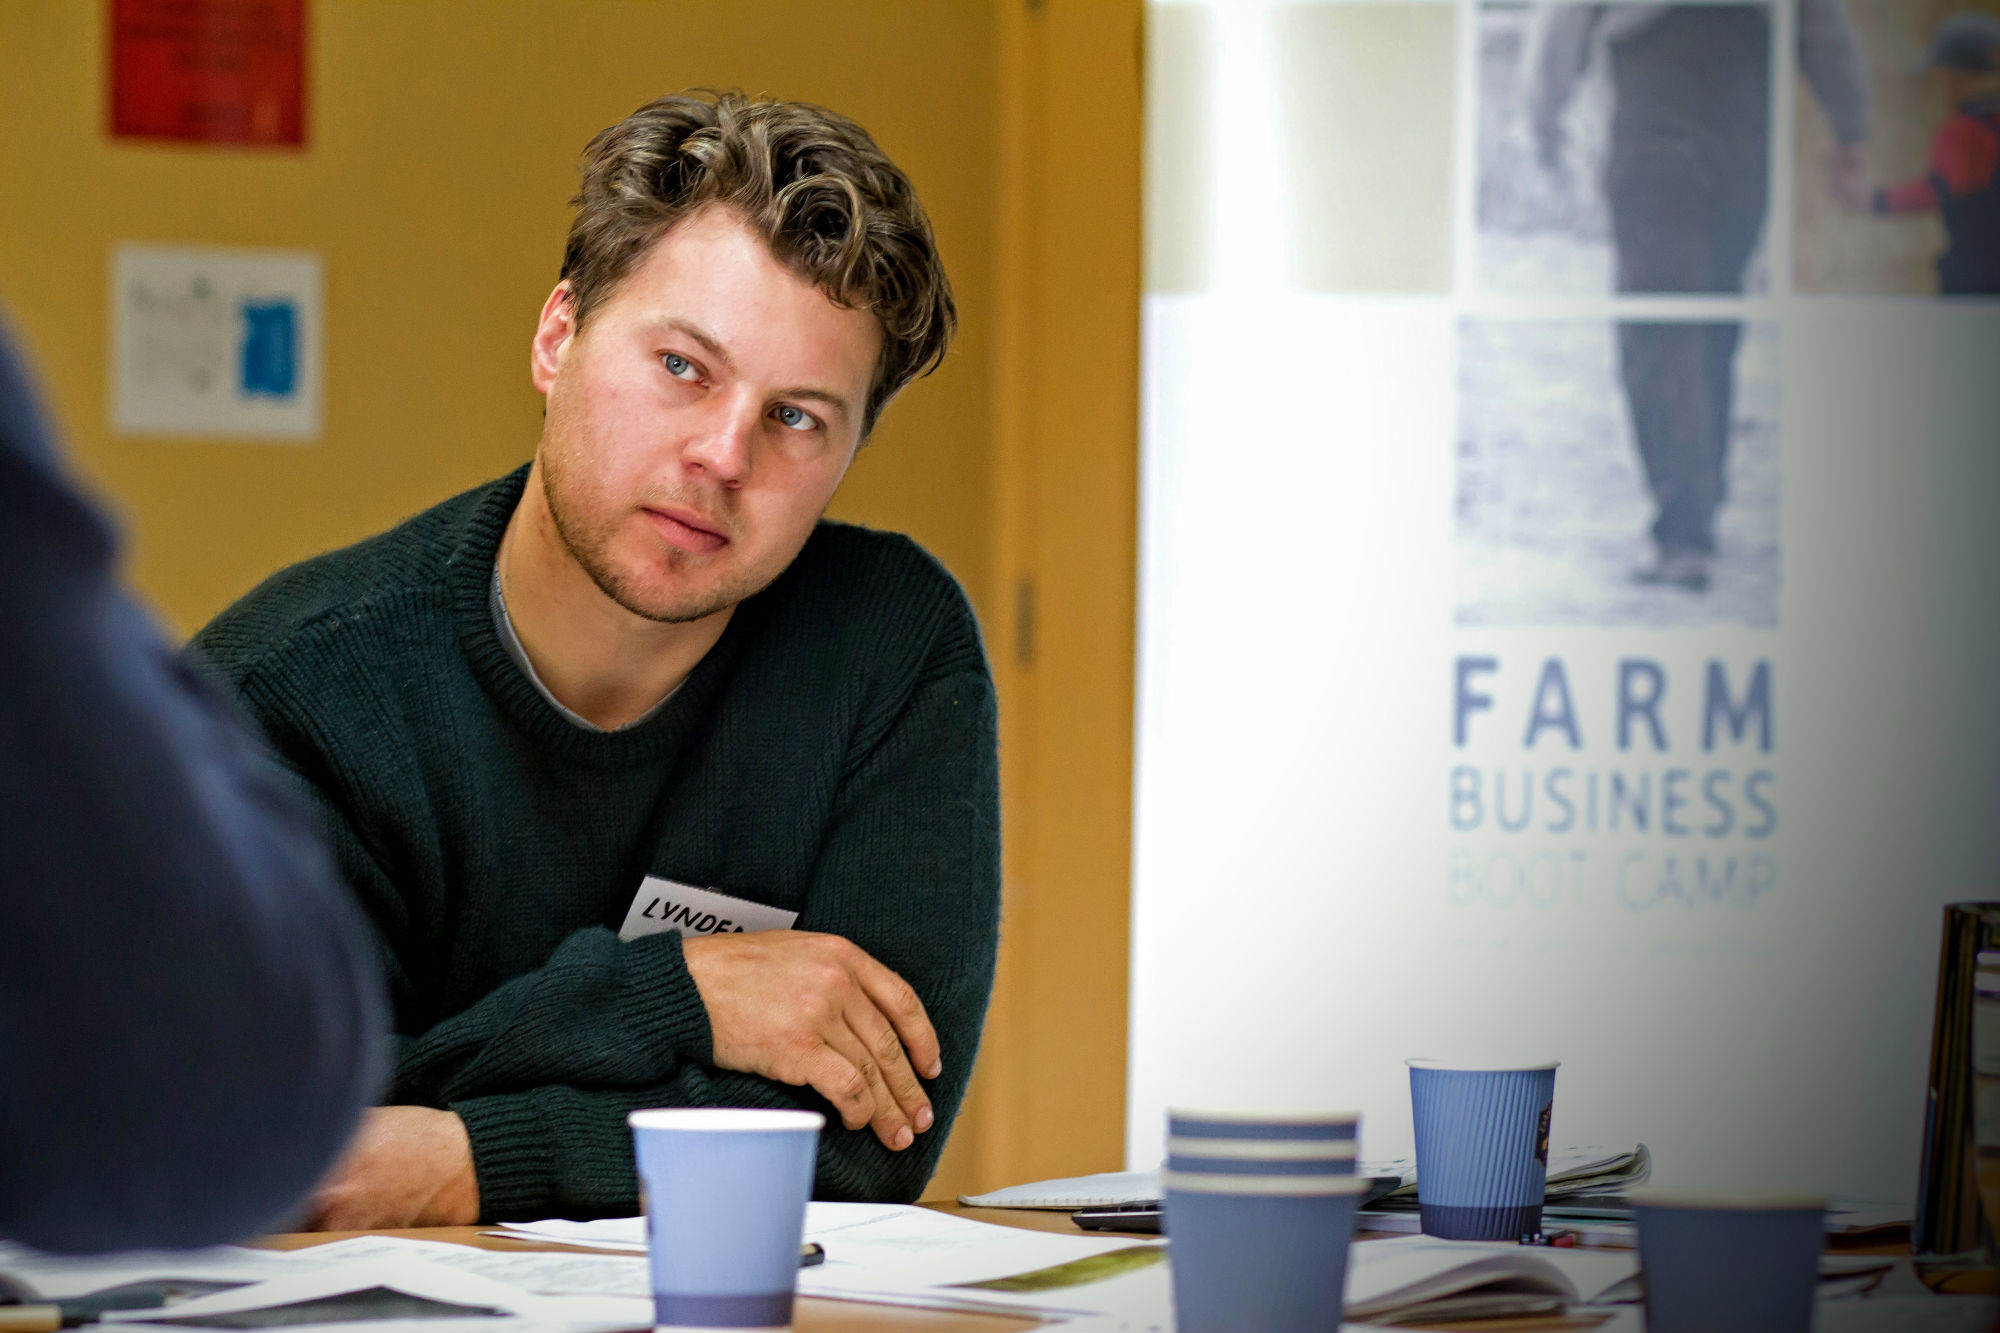 Young Farmer attending a Business Bootcamp